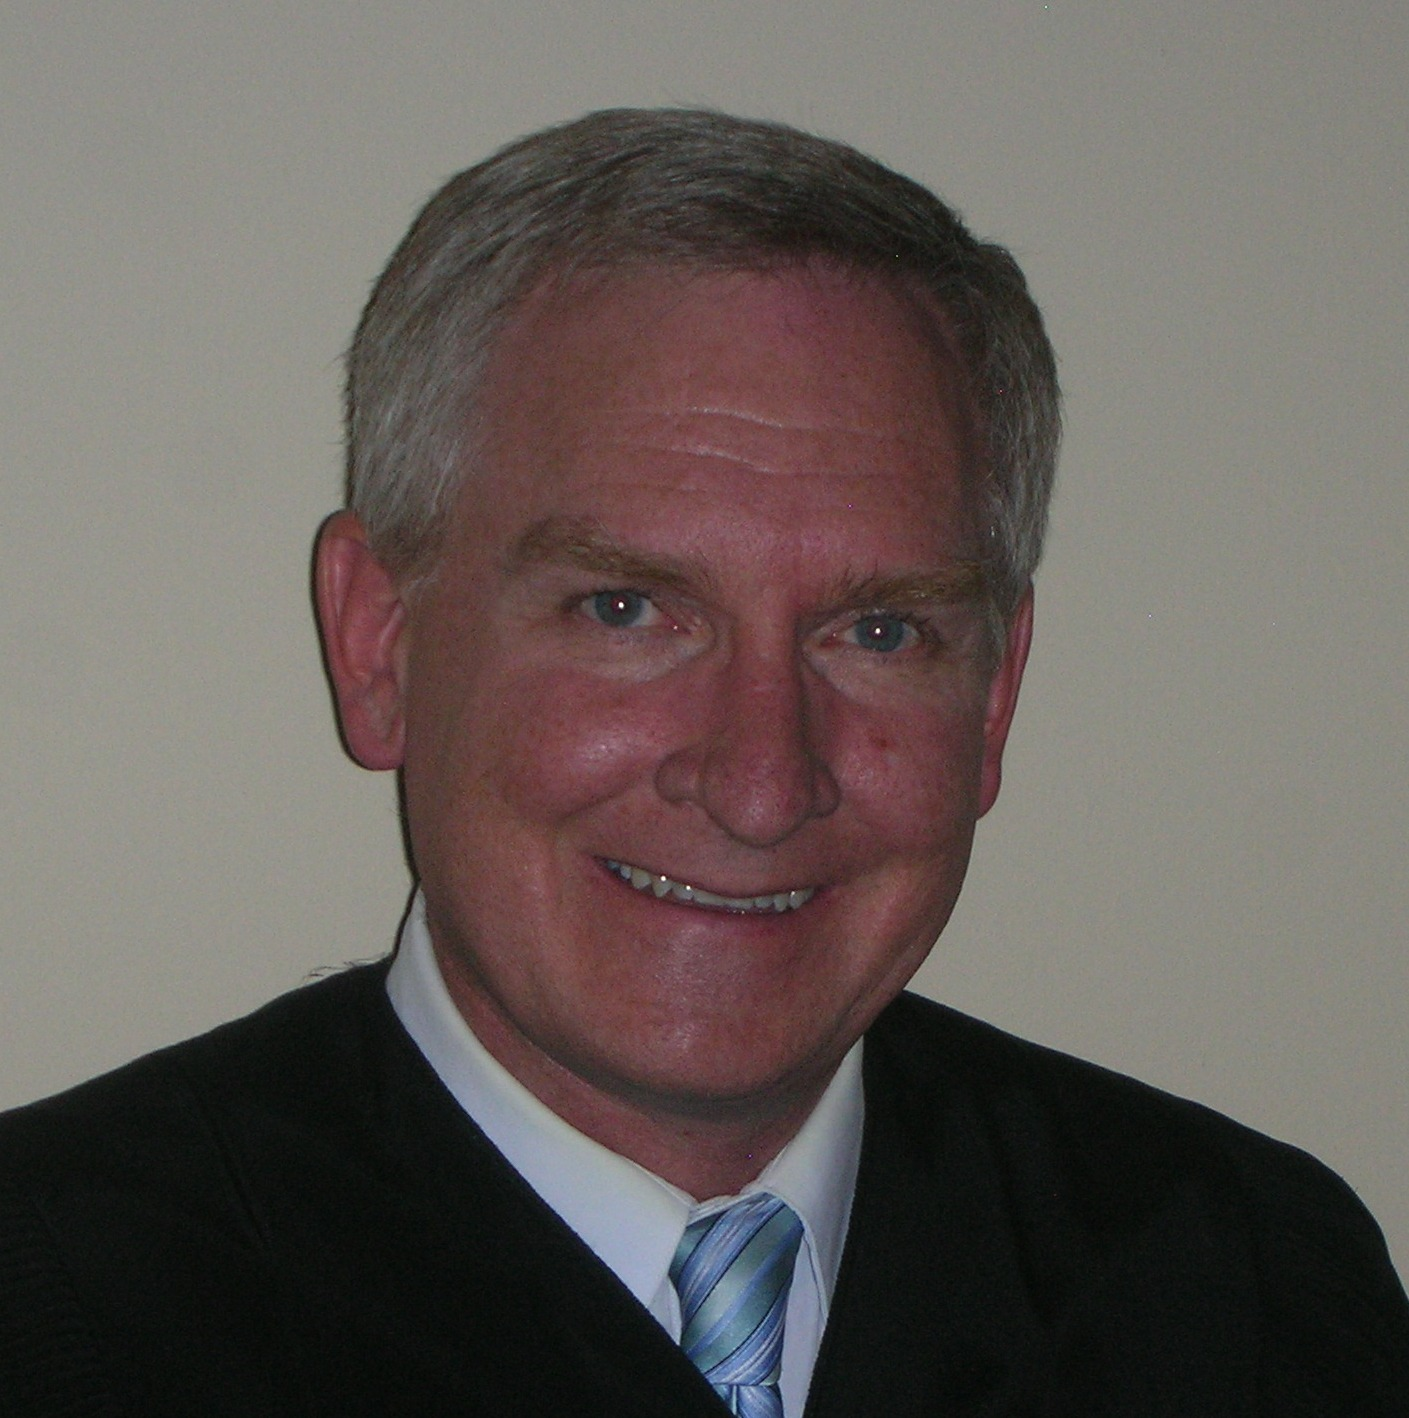 District judge 174th judicial district - Judge Granger Received His Law Degree From The Southwestern University School Of Law Los Angeles He Engaged In Private Practice In Georgetown And Served